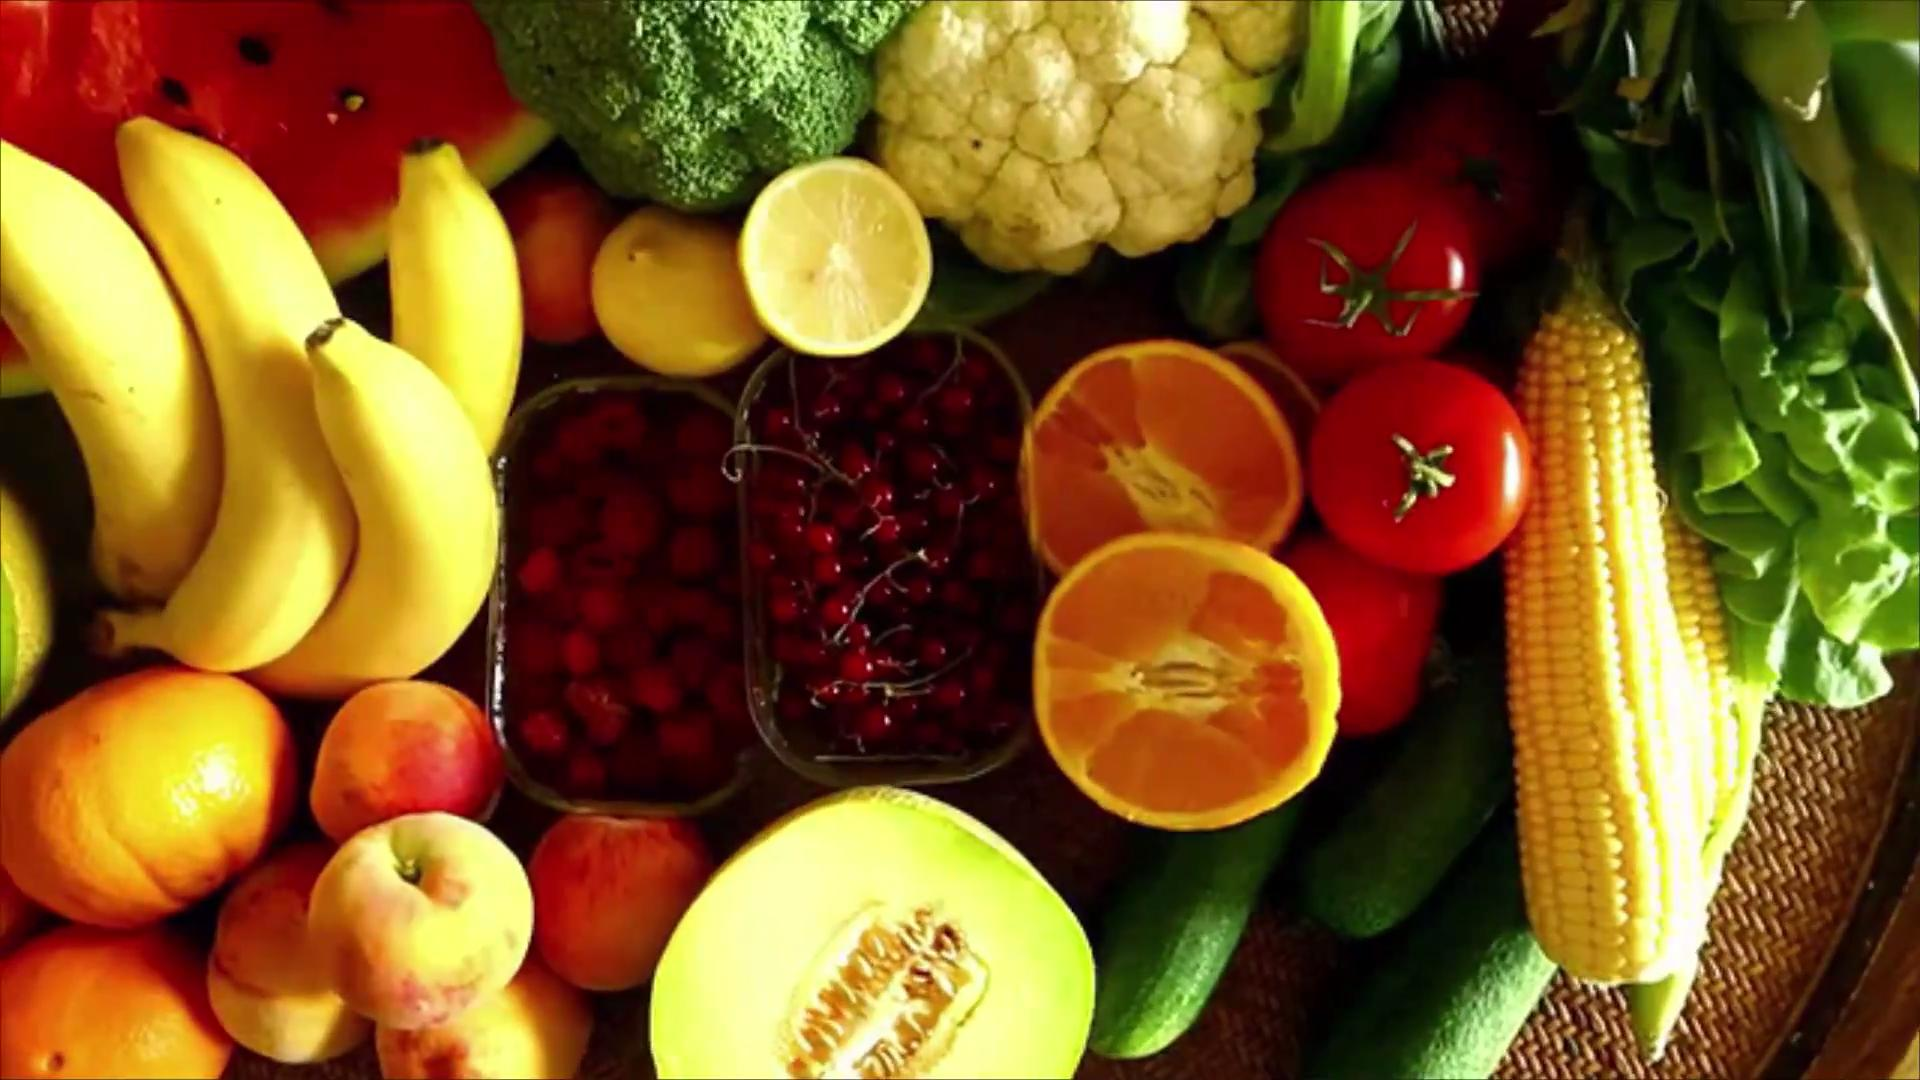 Fruits and Vegetables: How Much Is a Serving?